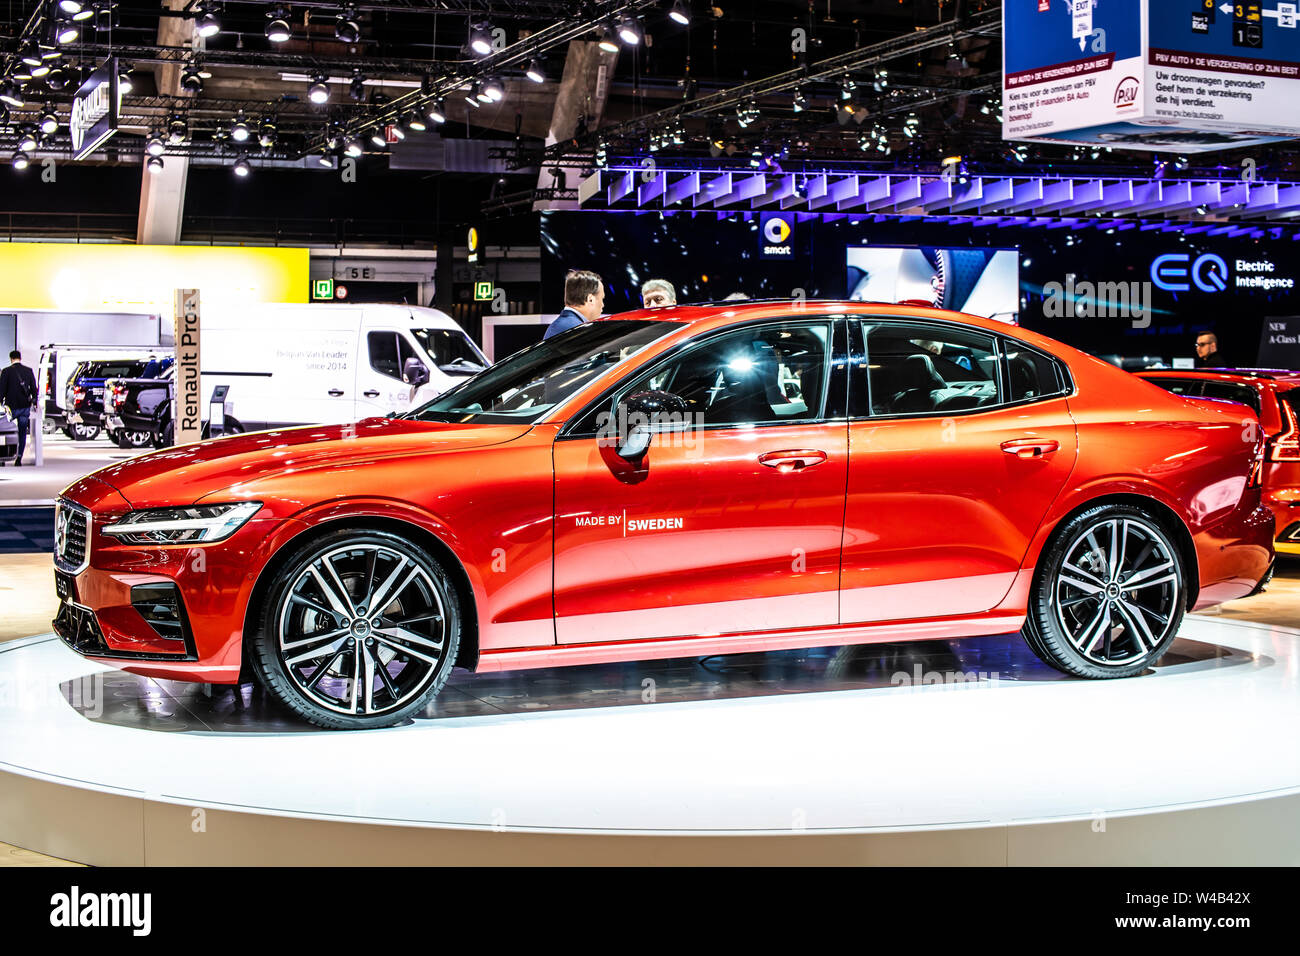 Brussels Belgium Jan 2019 Metallic Red Volvo S60 At Brussels Motor Show Executive Sedan Manufactured By Swedish Automaker Volvo Cars Stock Photo Alamy